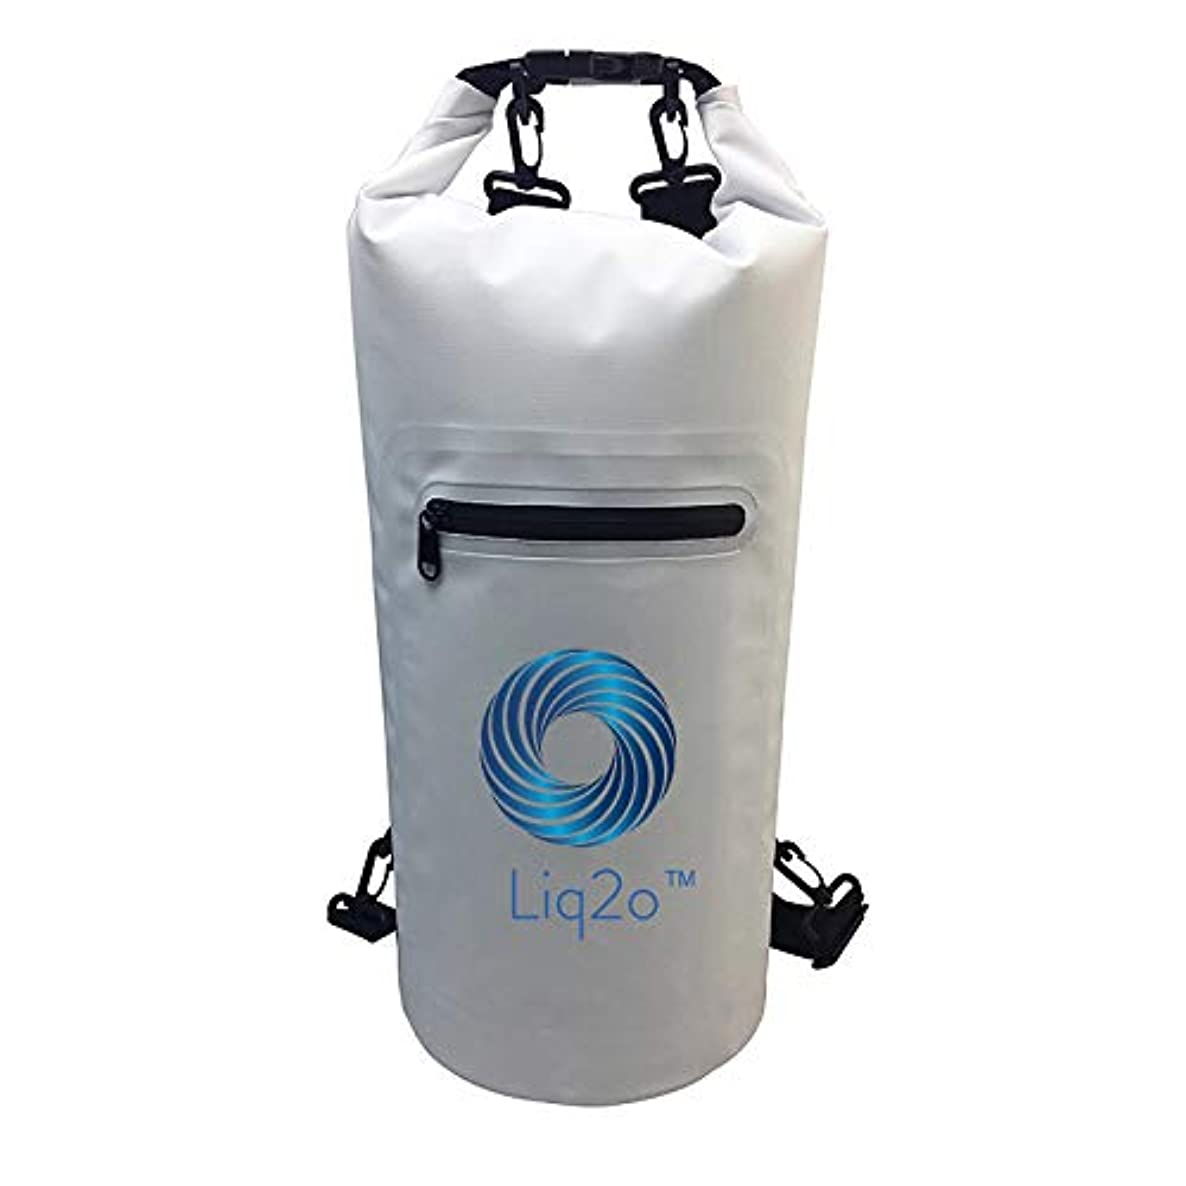 Liq2o Waterproof Dry Bag 20L   Keeps Clothing and Gear from Moisture  Great for Swimming, Kayaking, Surfing, Hiking, or Any Sporting Activity mwulkspqhkdhojei